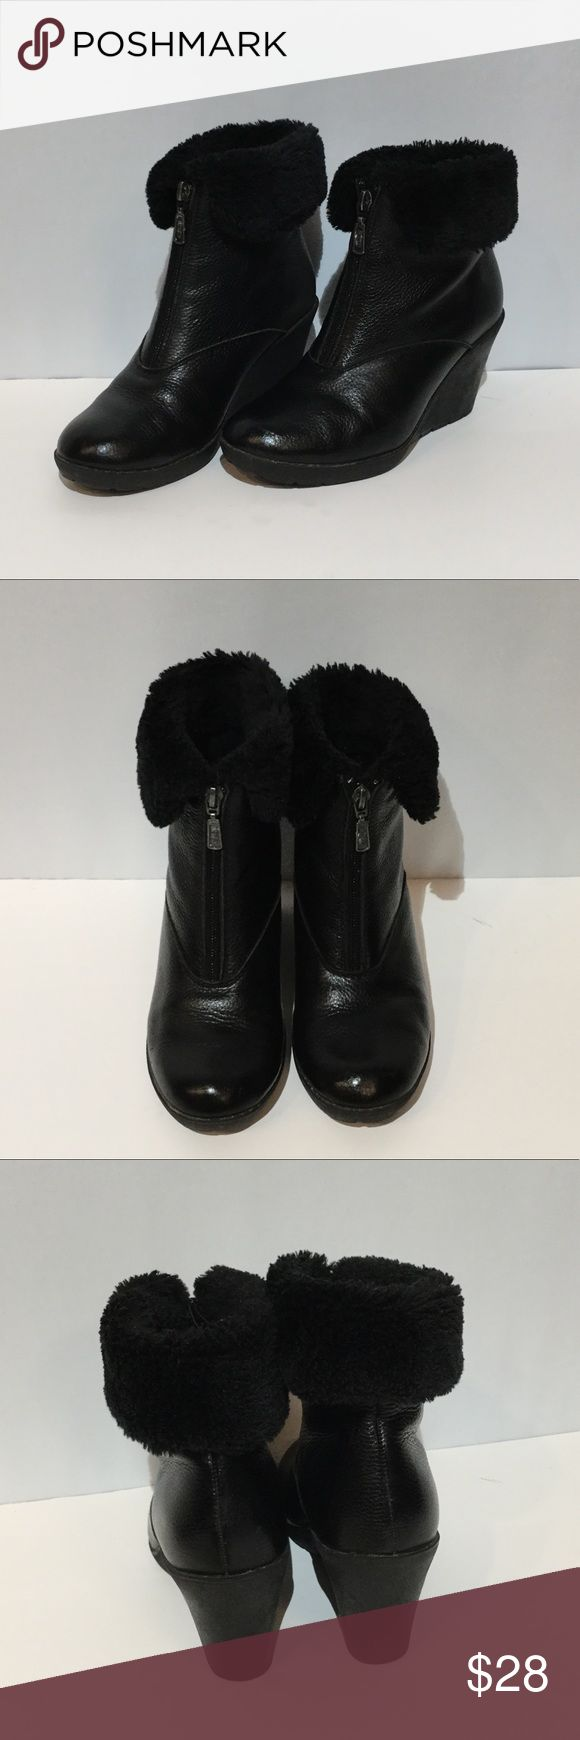 Khombu Booties 3 Inch Heel 🆕 Khombu boots with 3 inch rubber wedge heel. Khombu Beacon Boot style in black leather upper with black fur. Comfortable to walk in with good grip for winter. Worn but still look in great shape. Zipper front with hidden water proof attached tongue. Size 7. Khombu Shoes Winter & Rain Boots